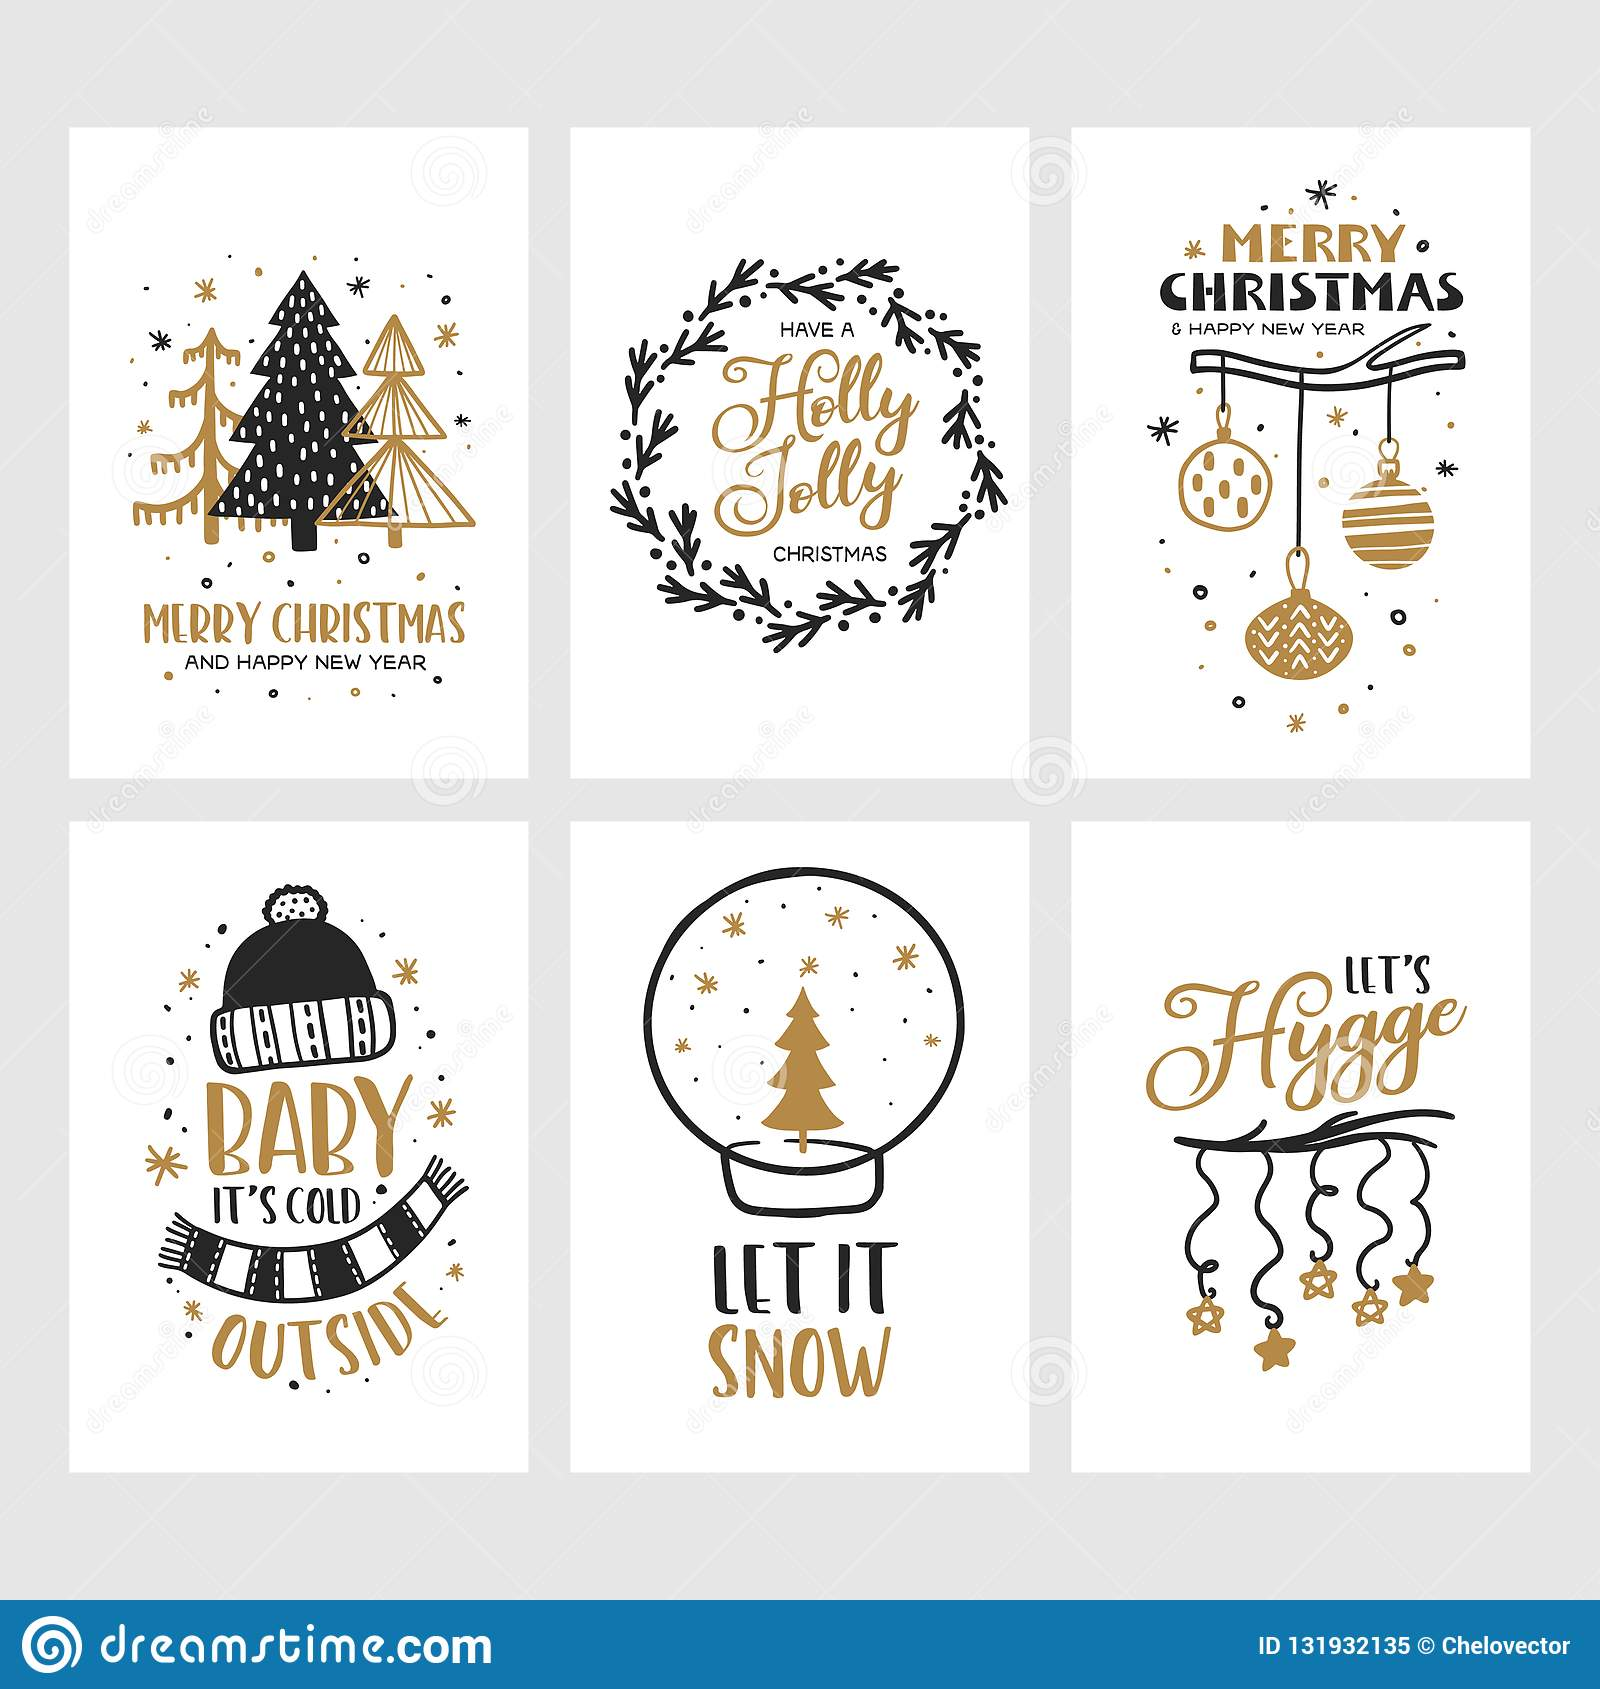 merry christmas and happy new year cards set vector vintage illustration